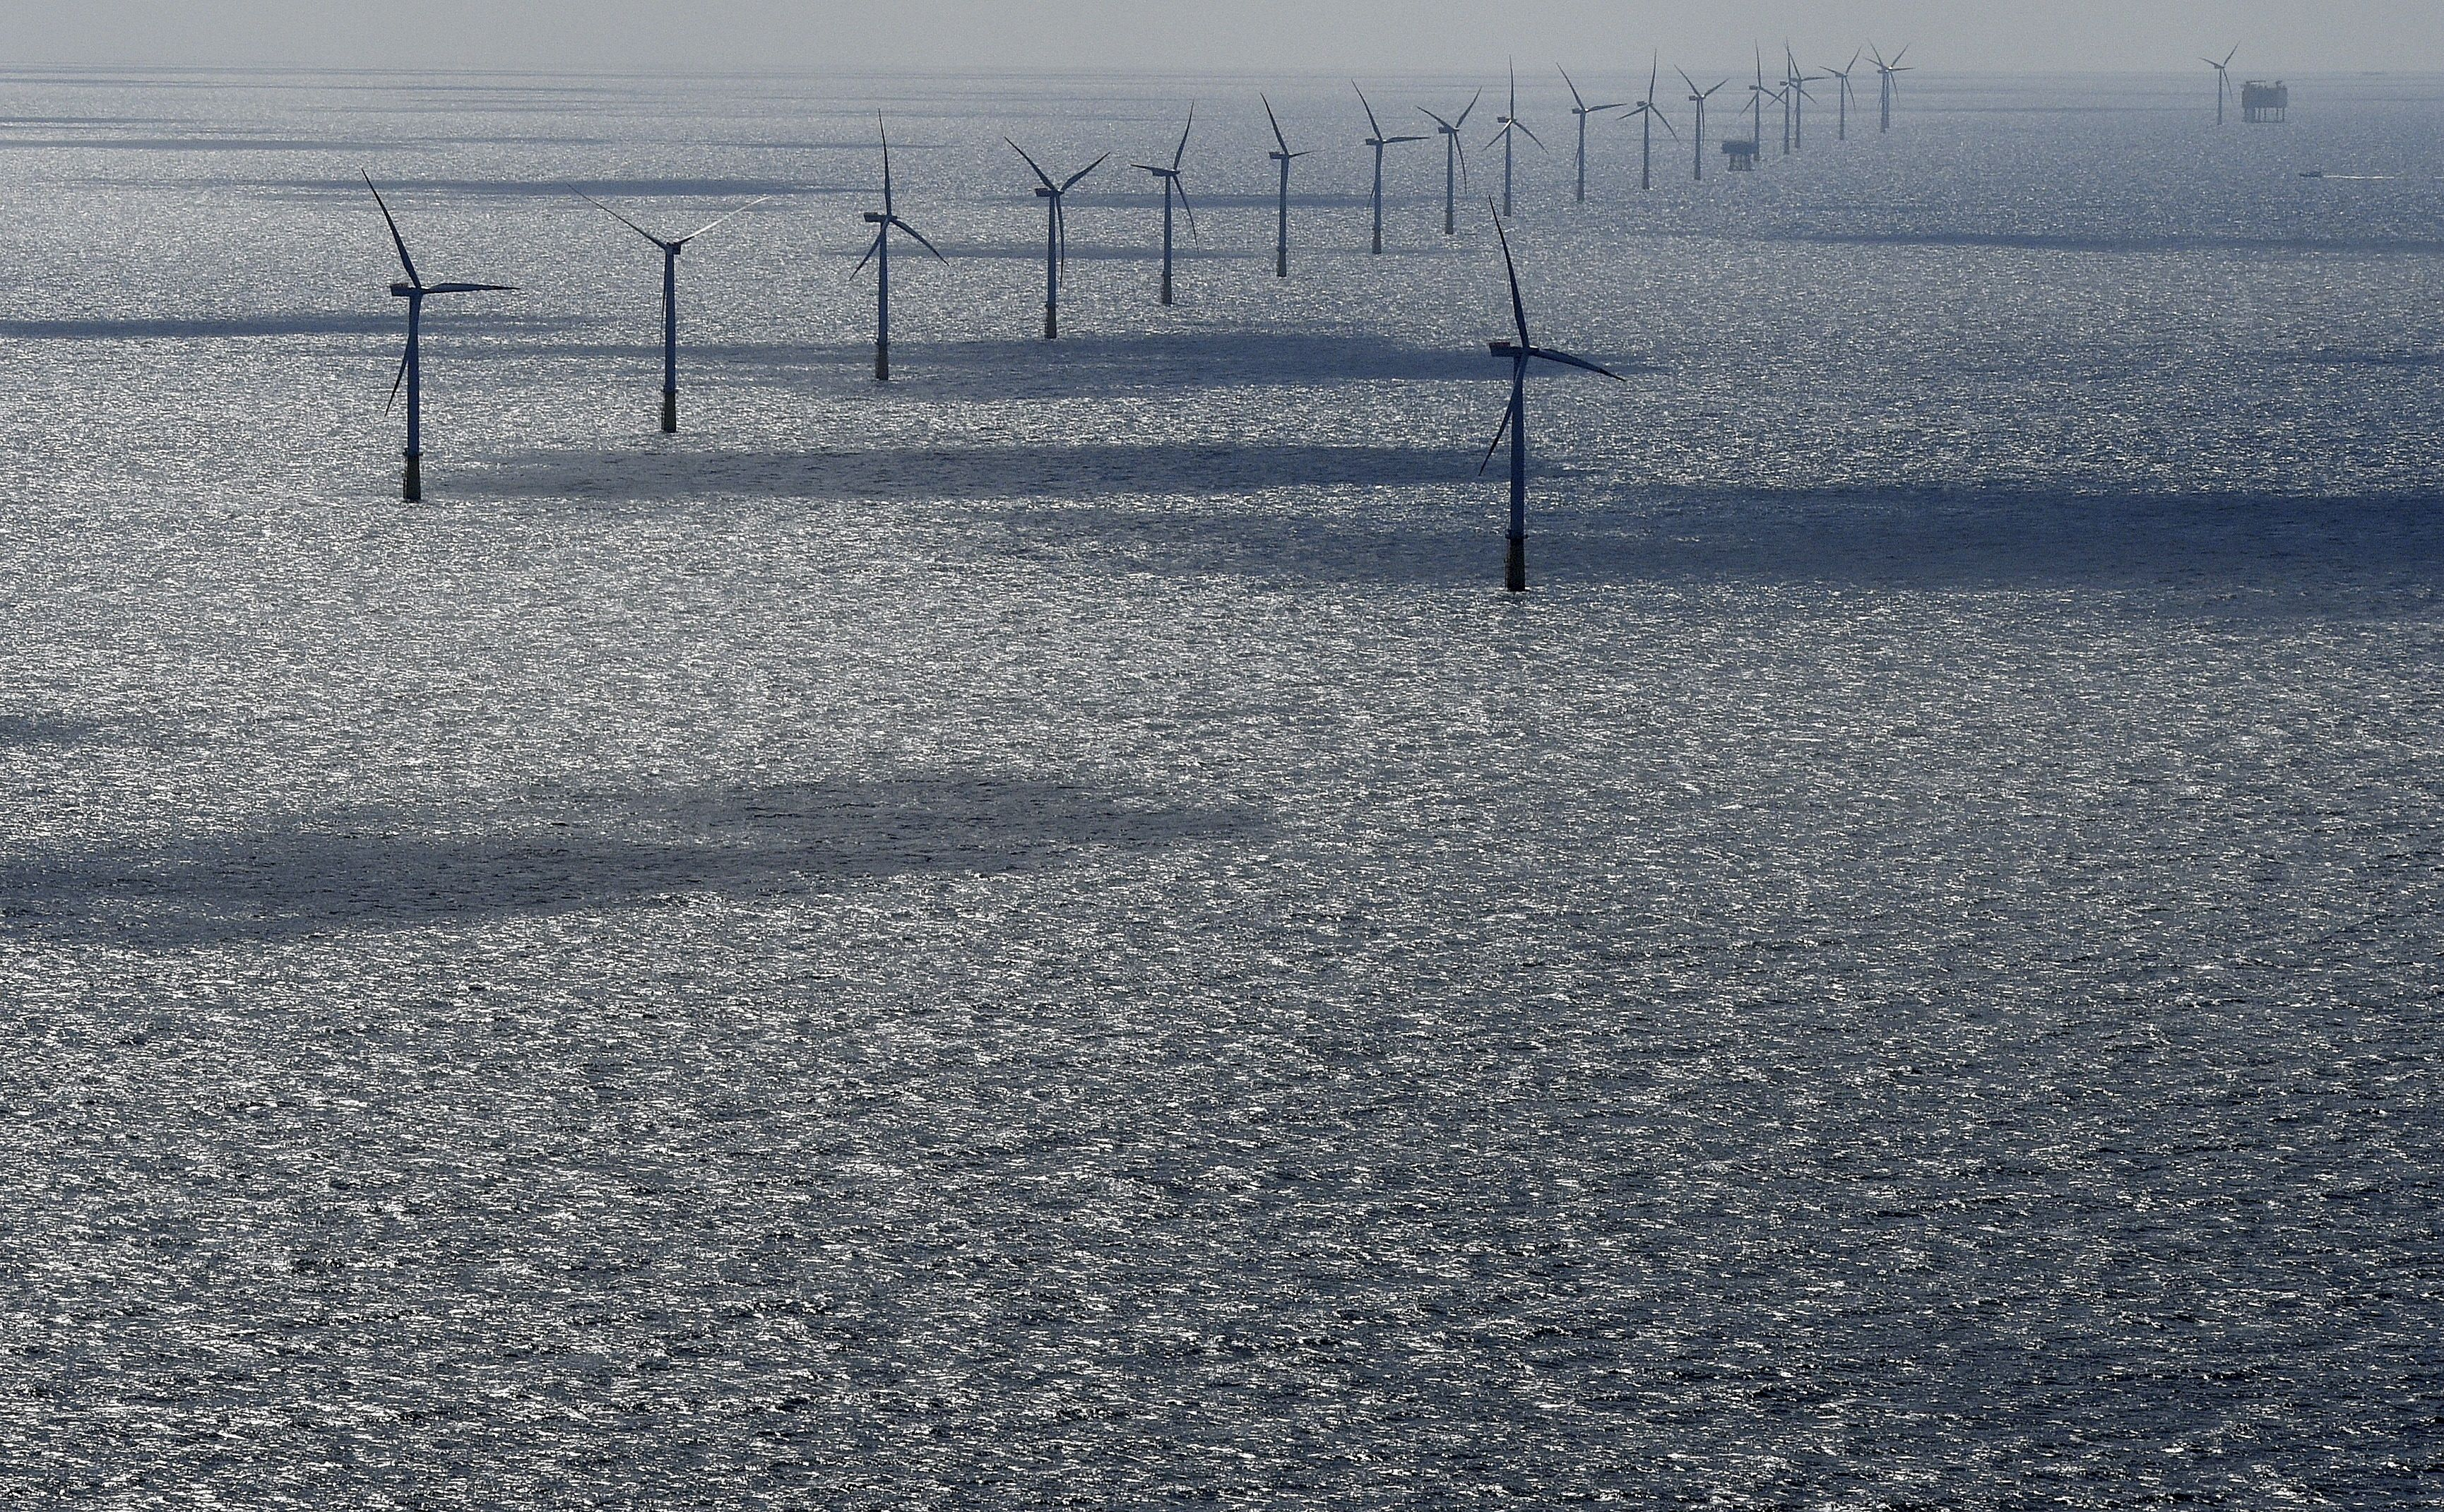 Windmills are seen in the